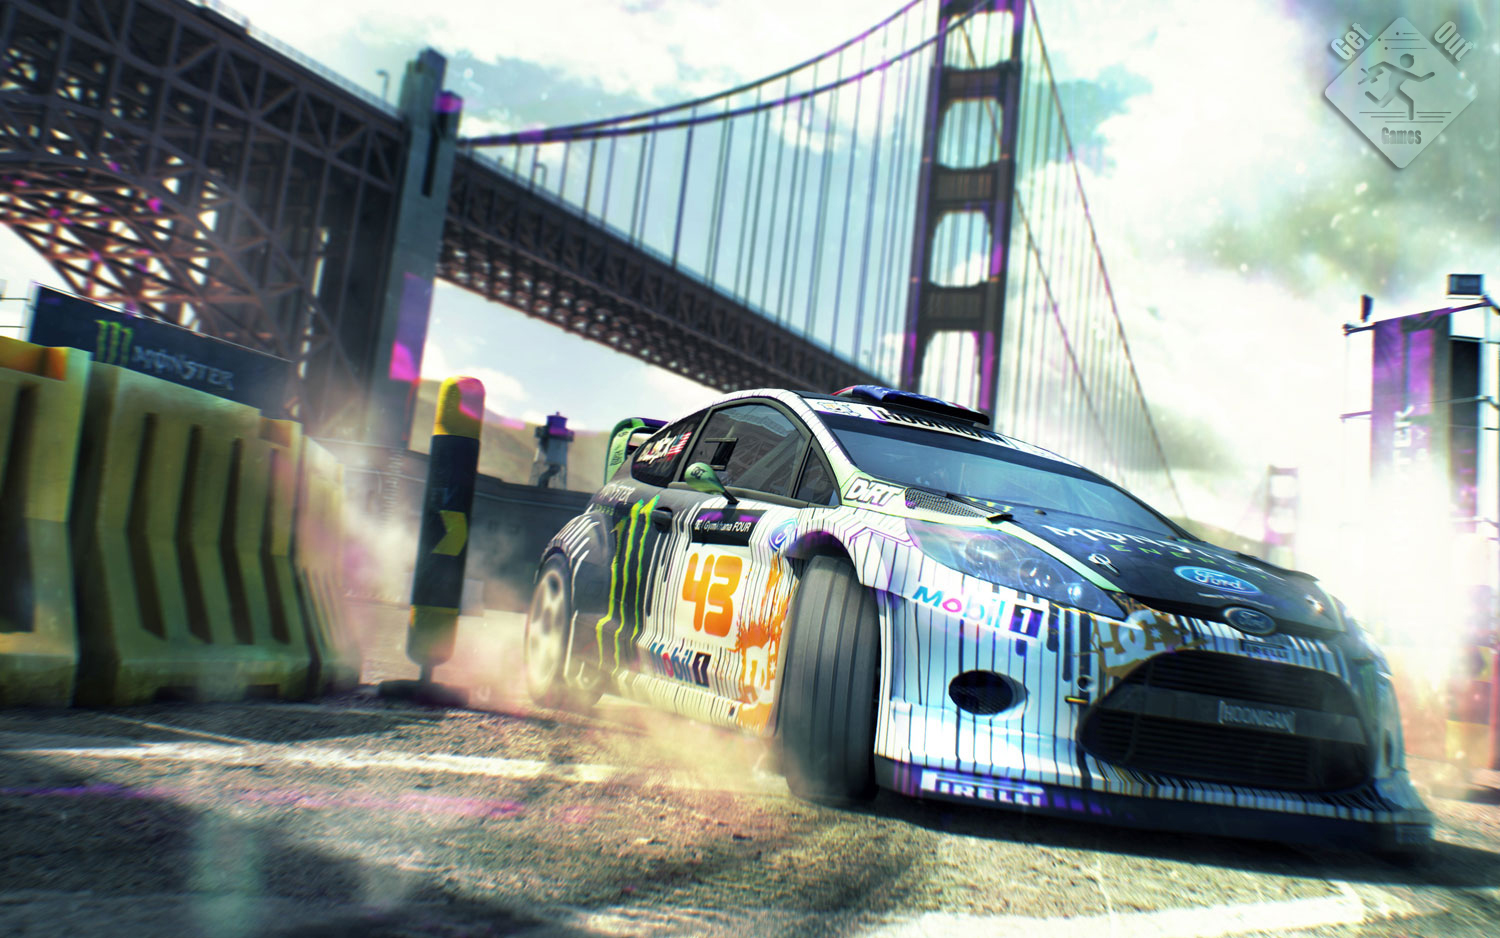 http://3.bp.blogspot.com/-Fv_QFo43jmY/T8z8pkxTSeI/AAAAAAAAAhU/c6bqCZOPoOA/s1600/Codemasters-Dirt-Showdown-Ken-Block-Ford-Fiesta-Rally-Car.jpg